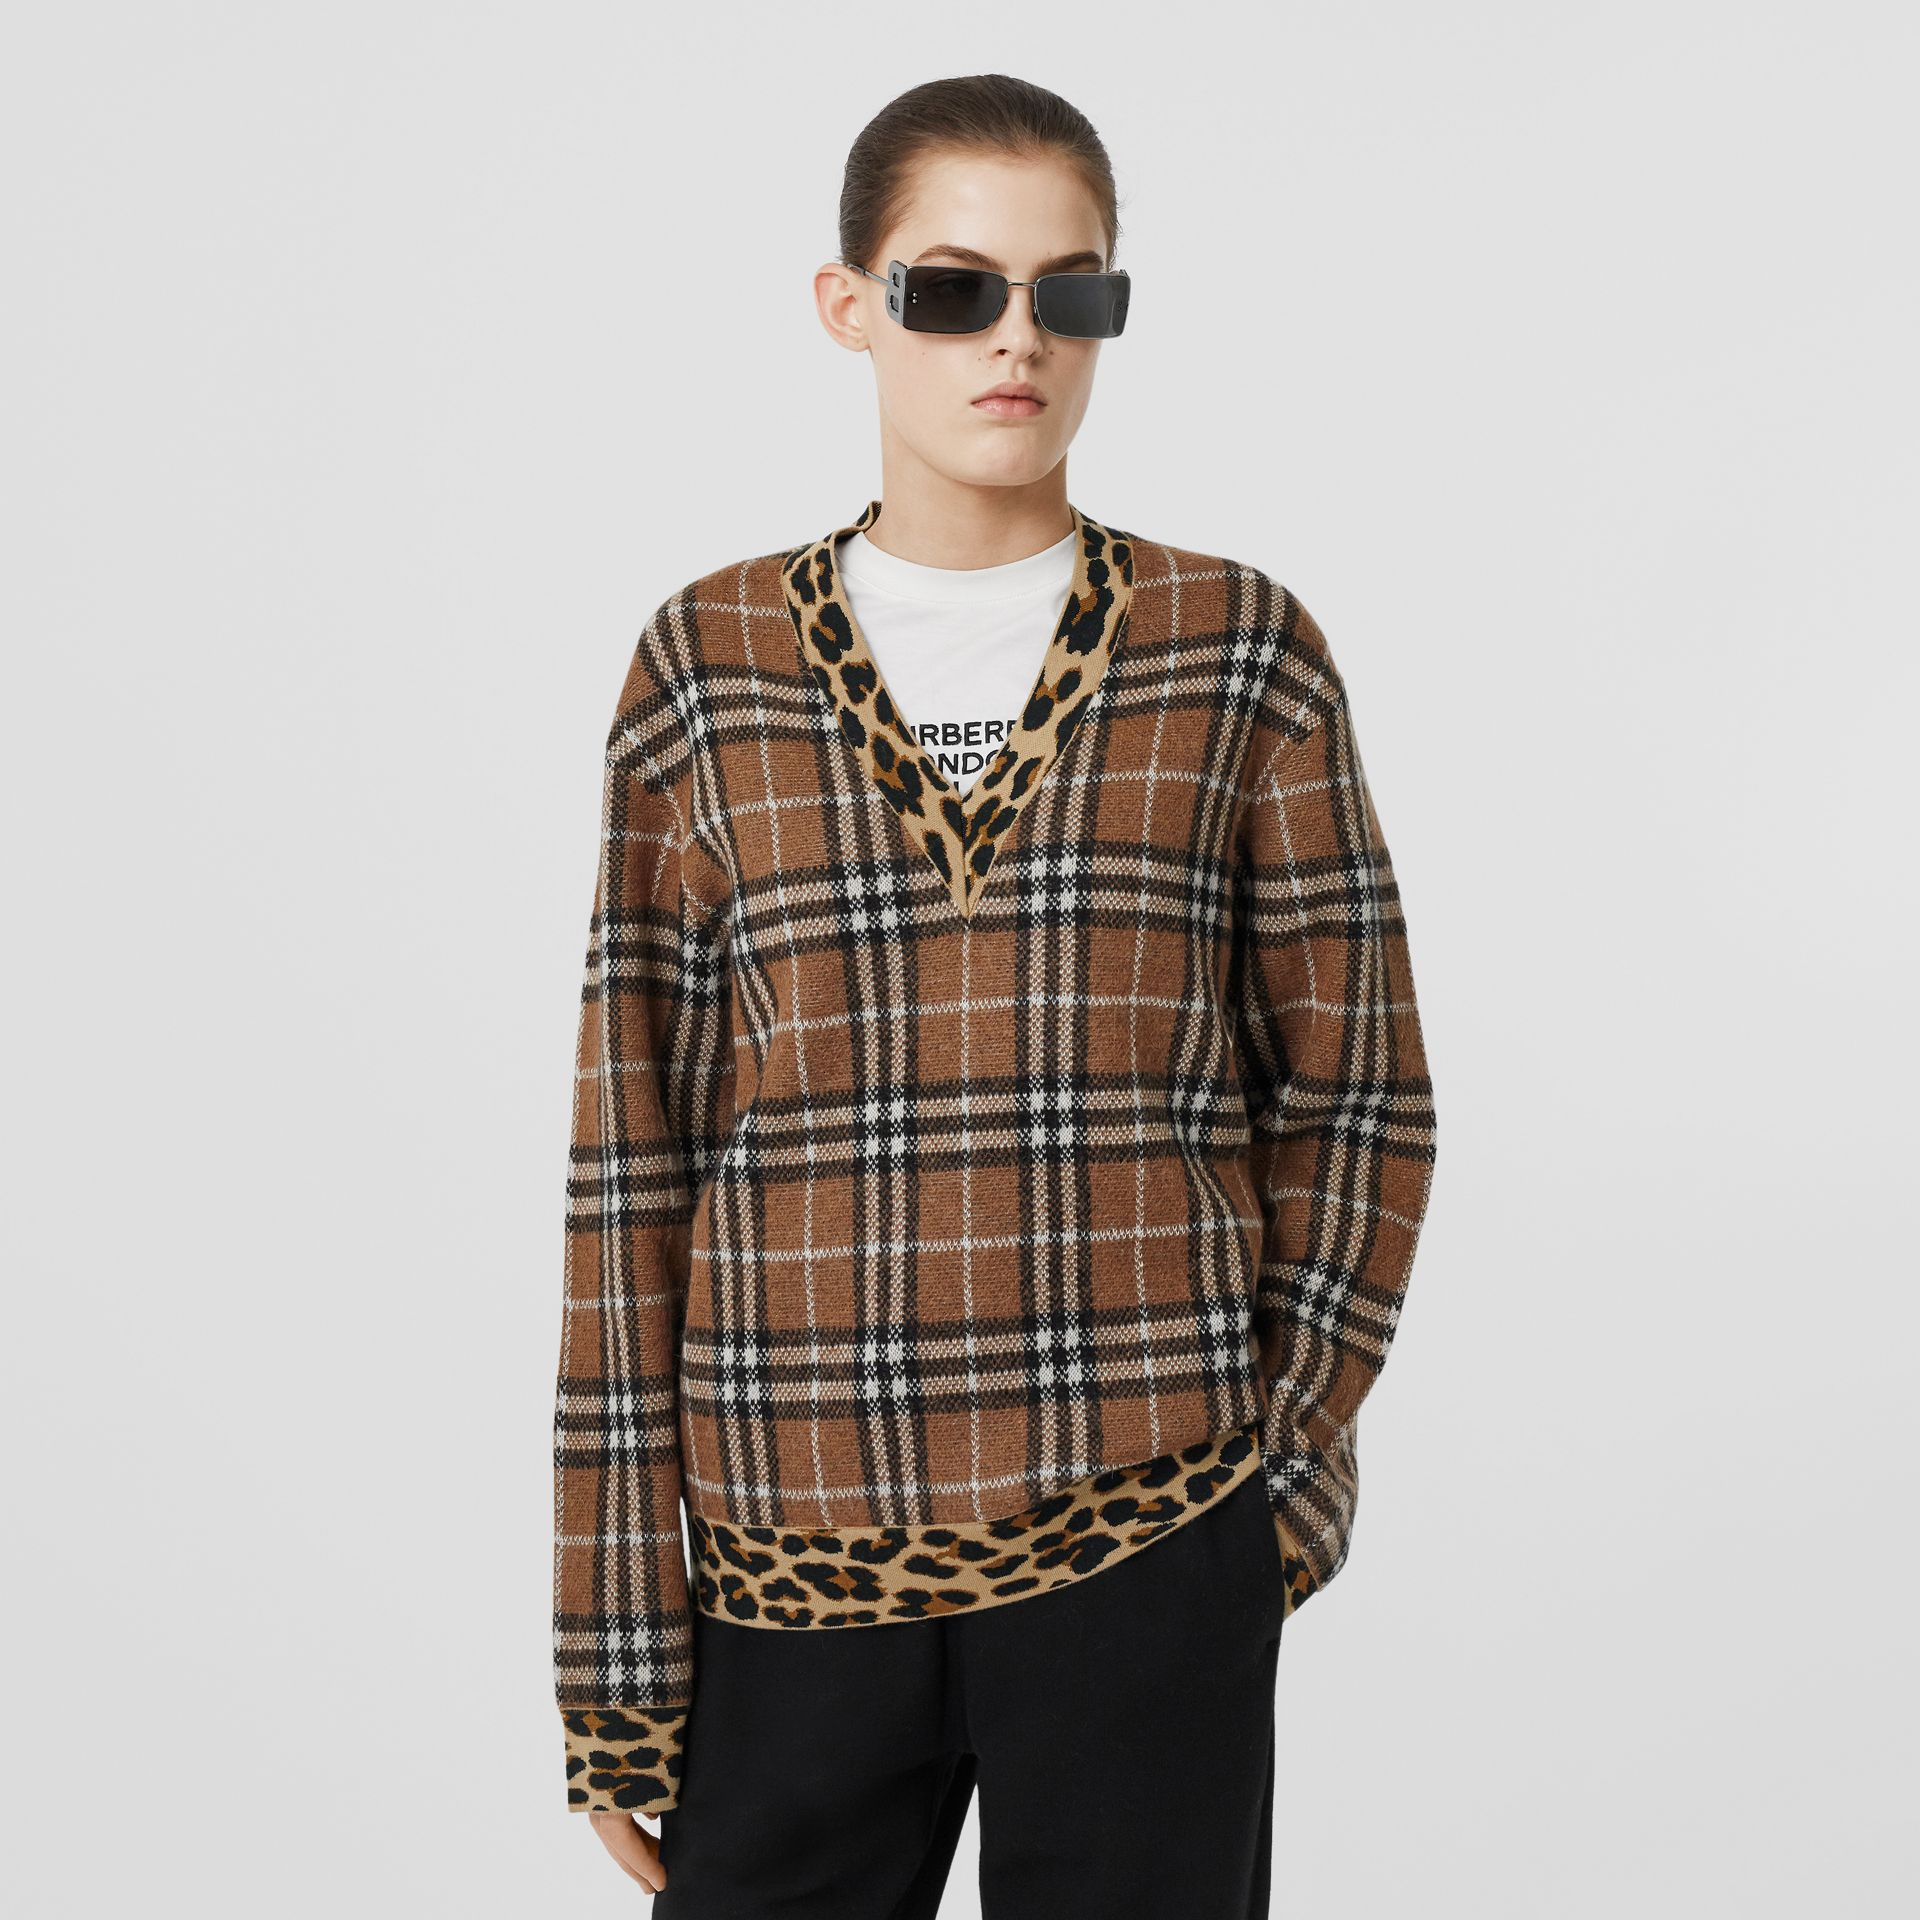 Leopard Detail Vintage Check Cashmere Blend Sweater in Archive Beige - Women | Burberry Hong Kong S.A.R - gallery image 5